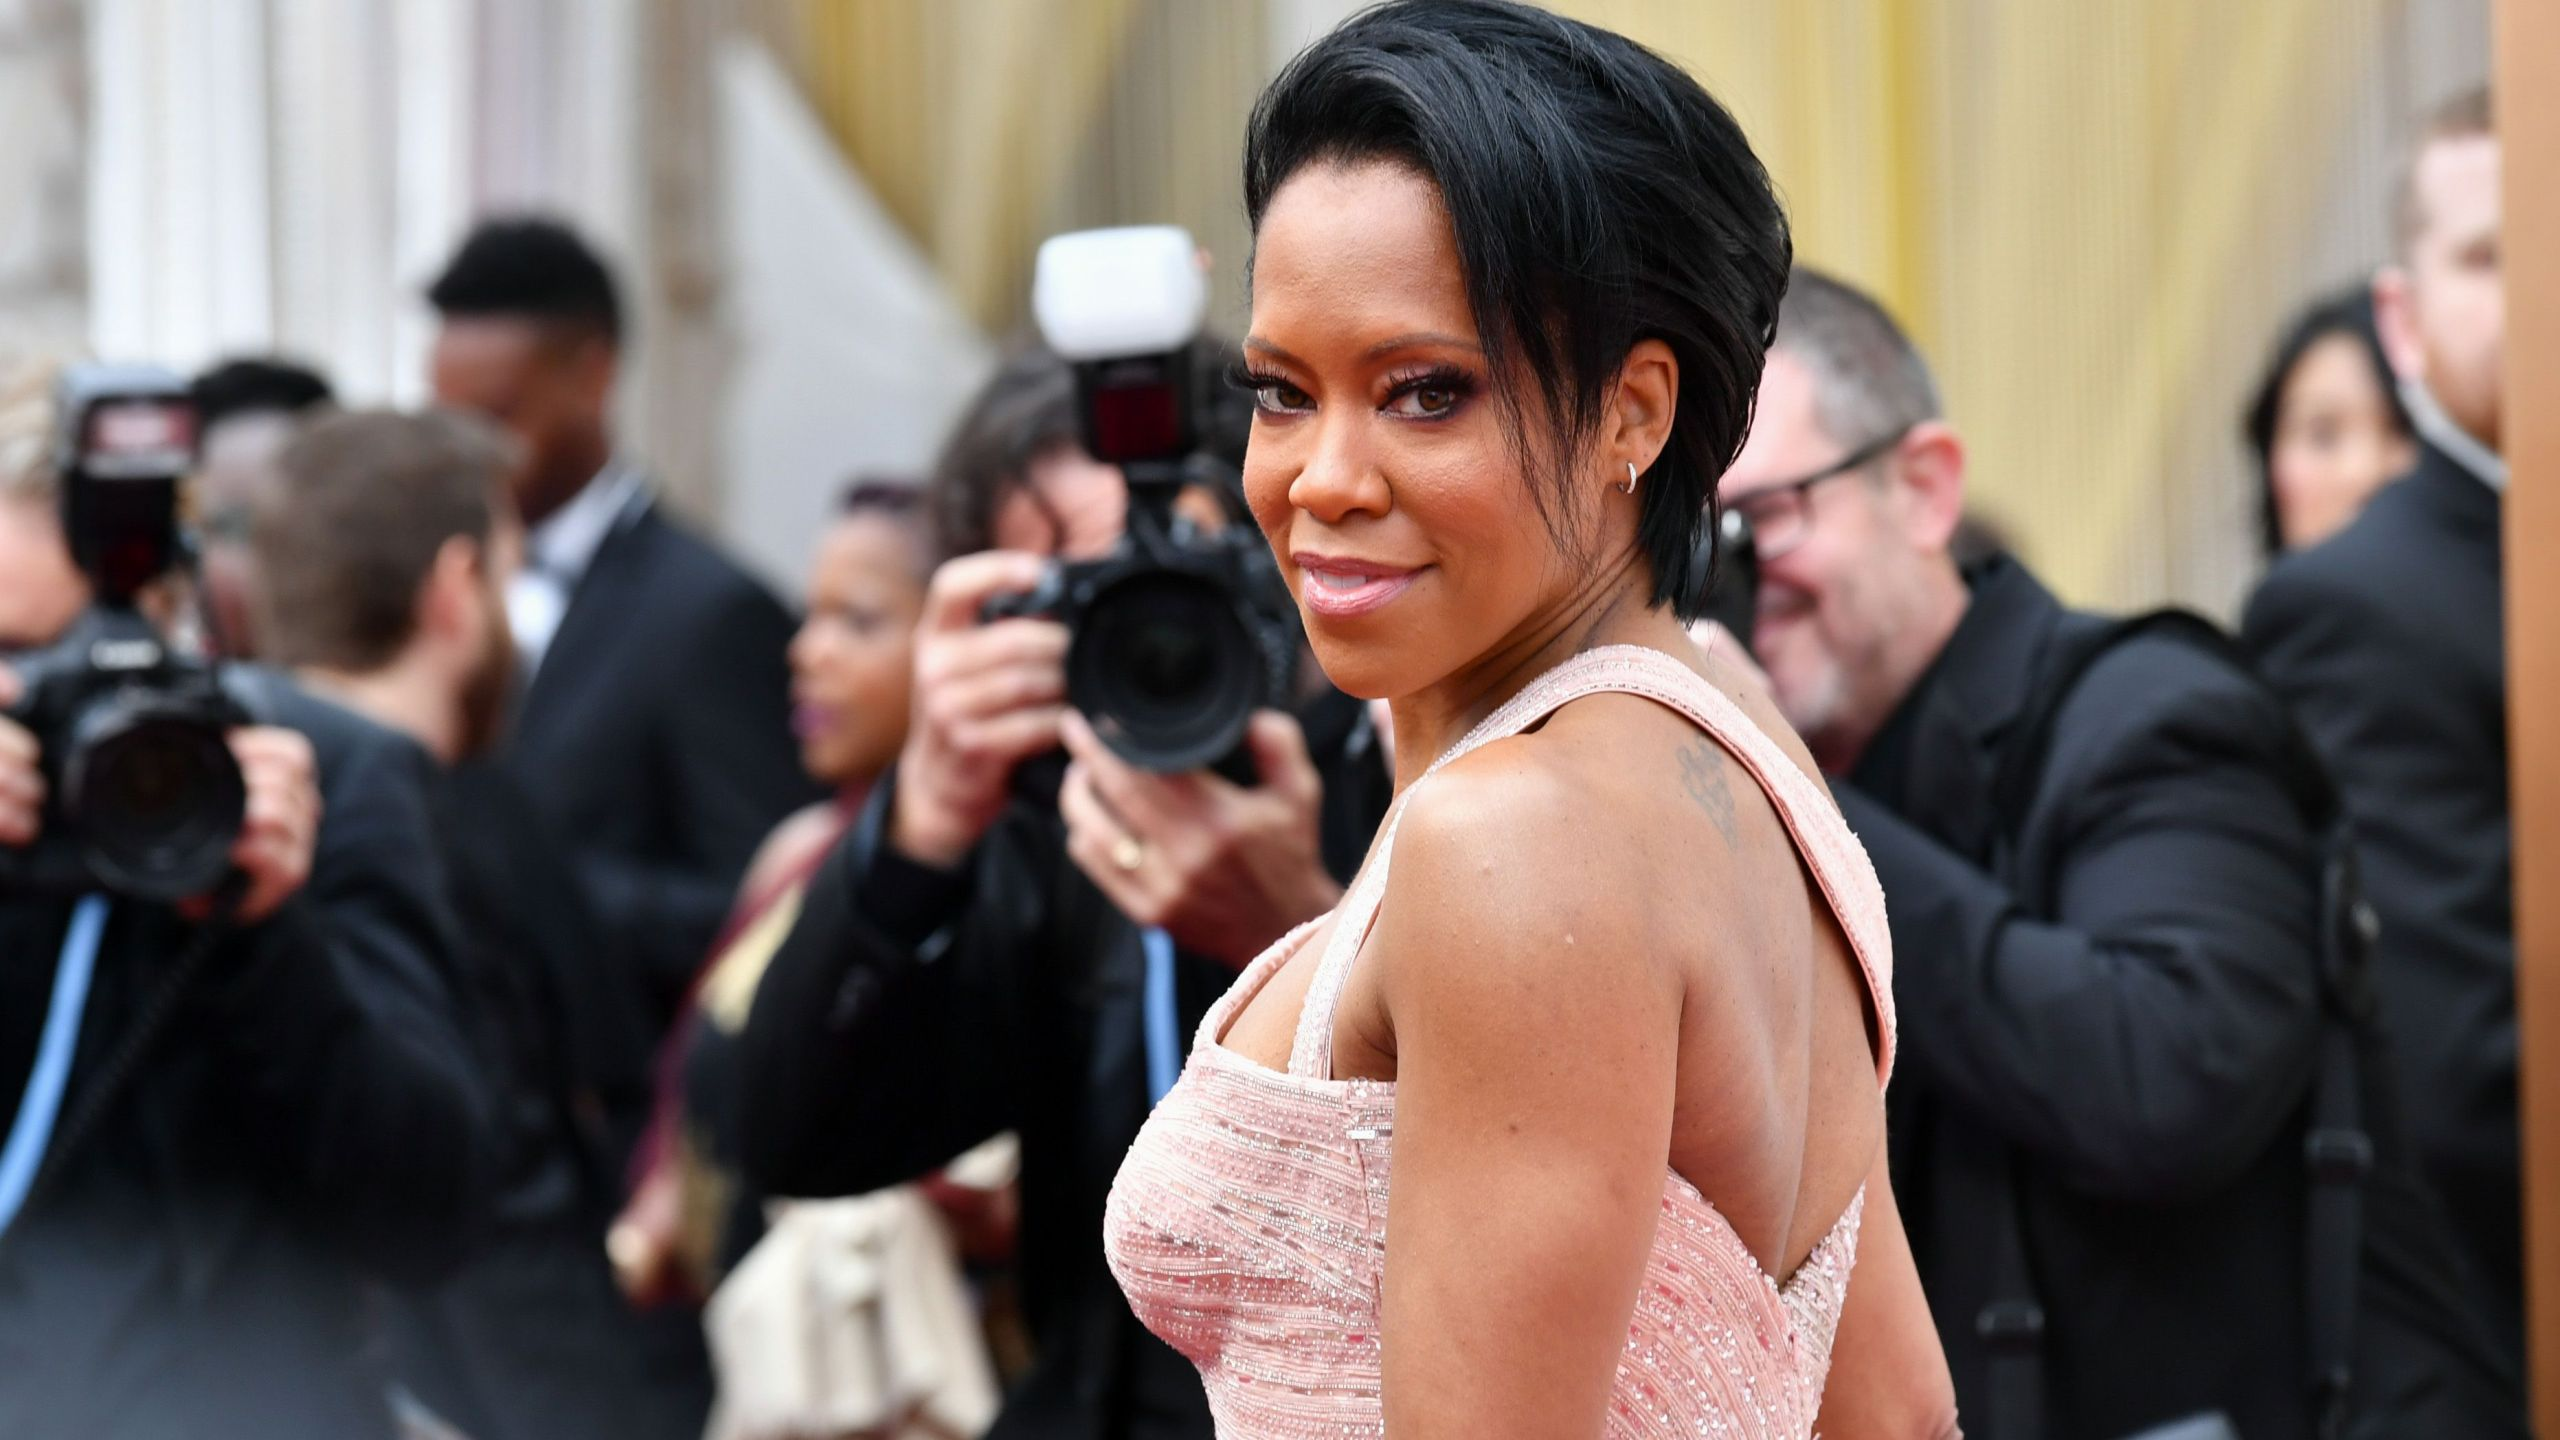 Regina King attends the 92nd Annual Academy Awards at Hollywood and Highland on Feb. 9, 2020 in Hollywood. (Amy Sussman/Getty Images)